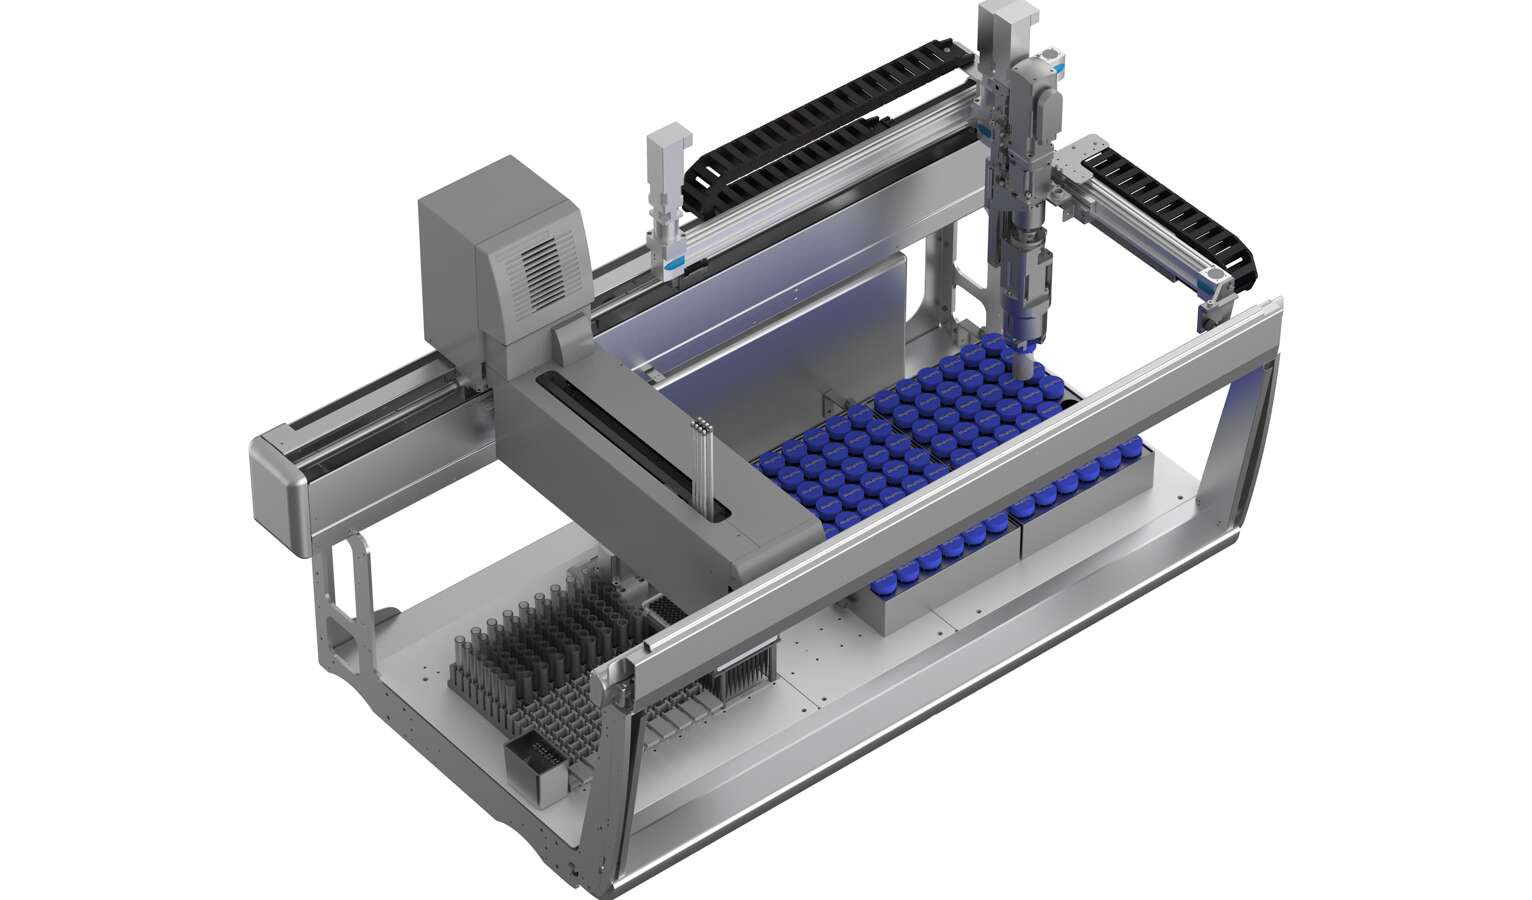 JANUS® G3 Workstation with a customized rotary gripper module and subsystems from Festo.